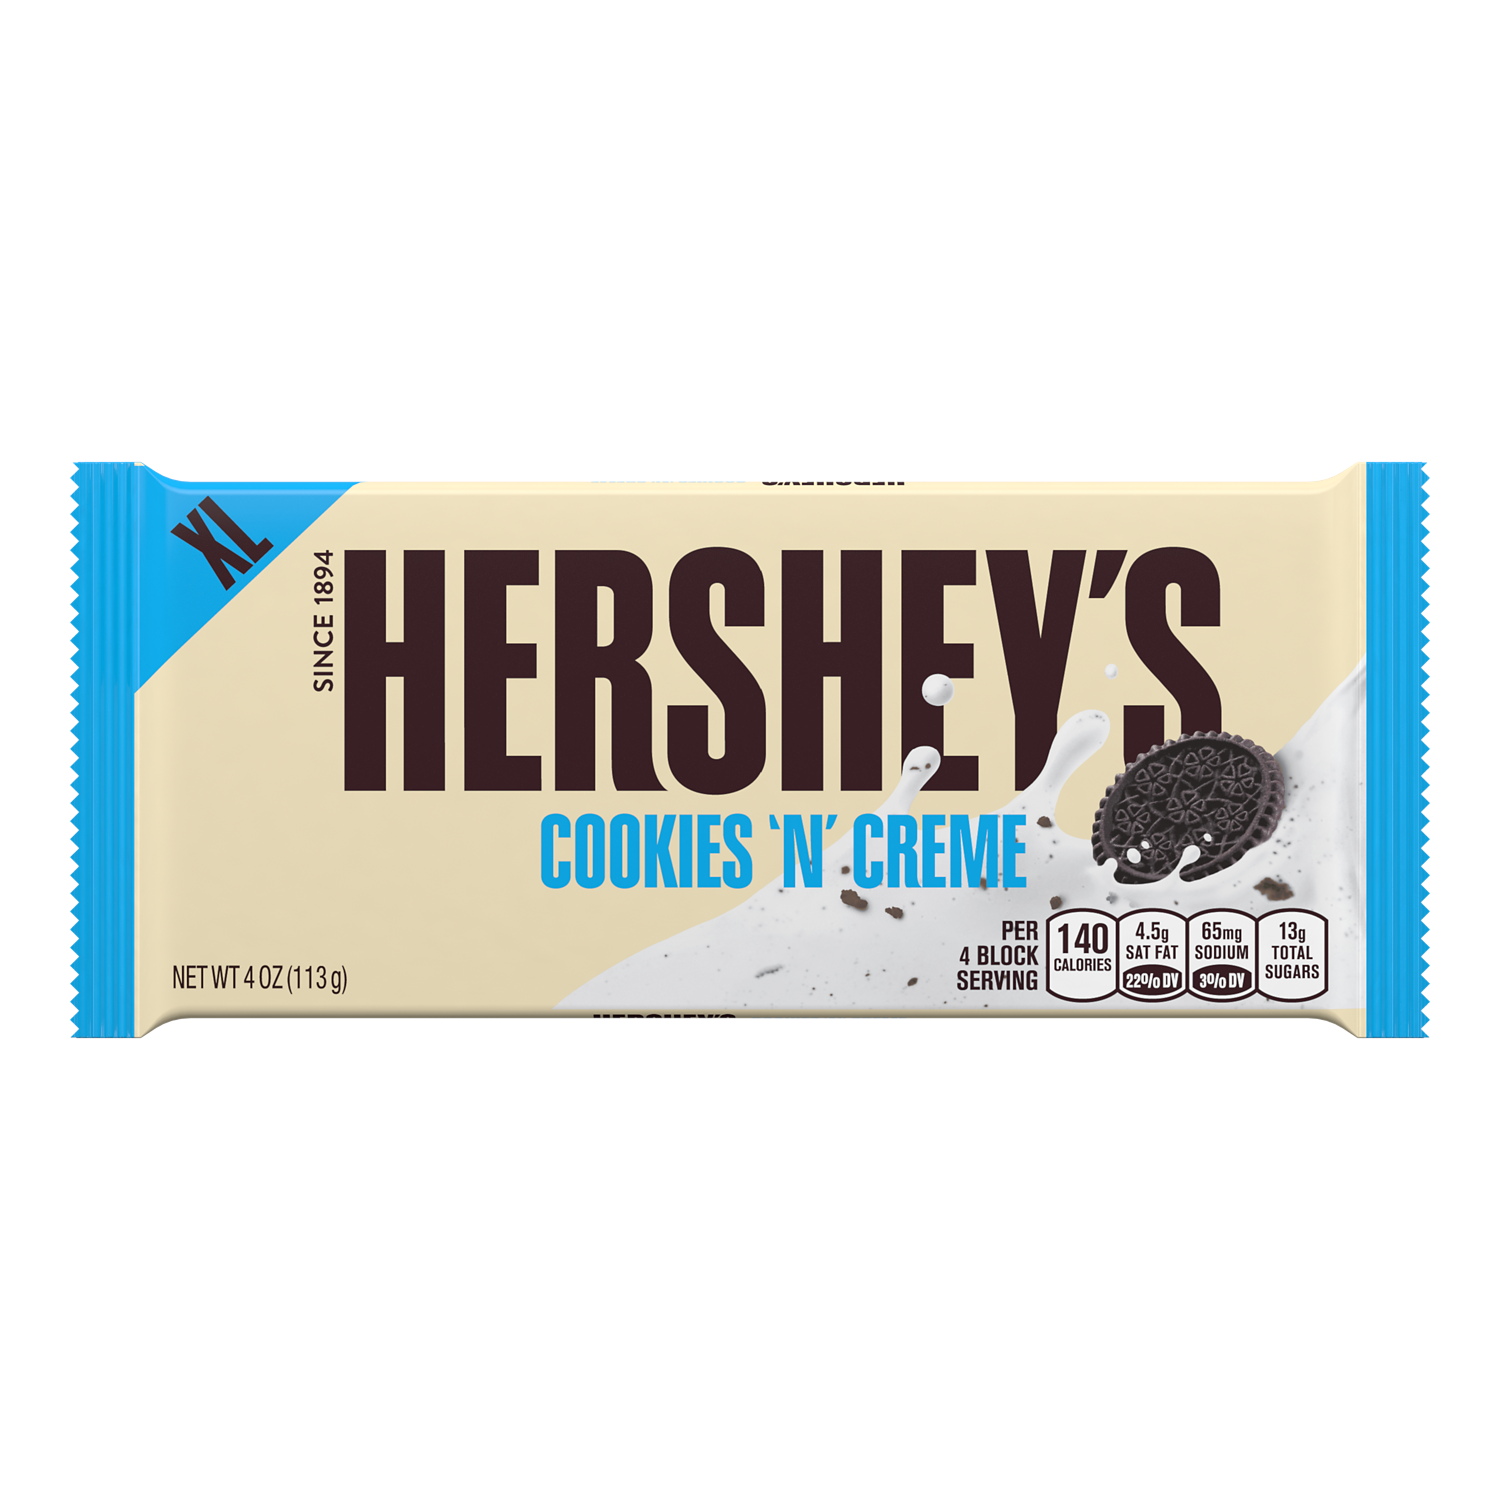 HERSHEY'S COOKIES 'N' CREME XL Candy Bar, 4 oz - Front of Package